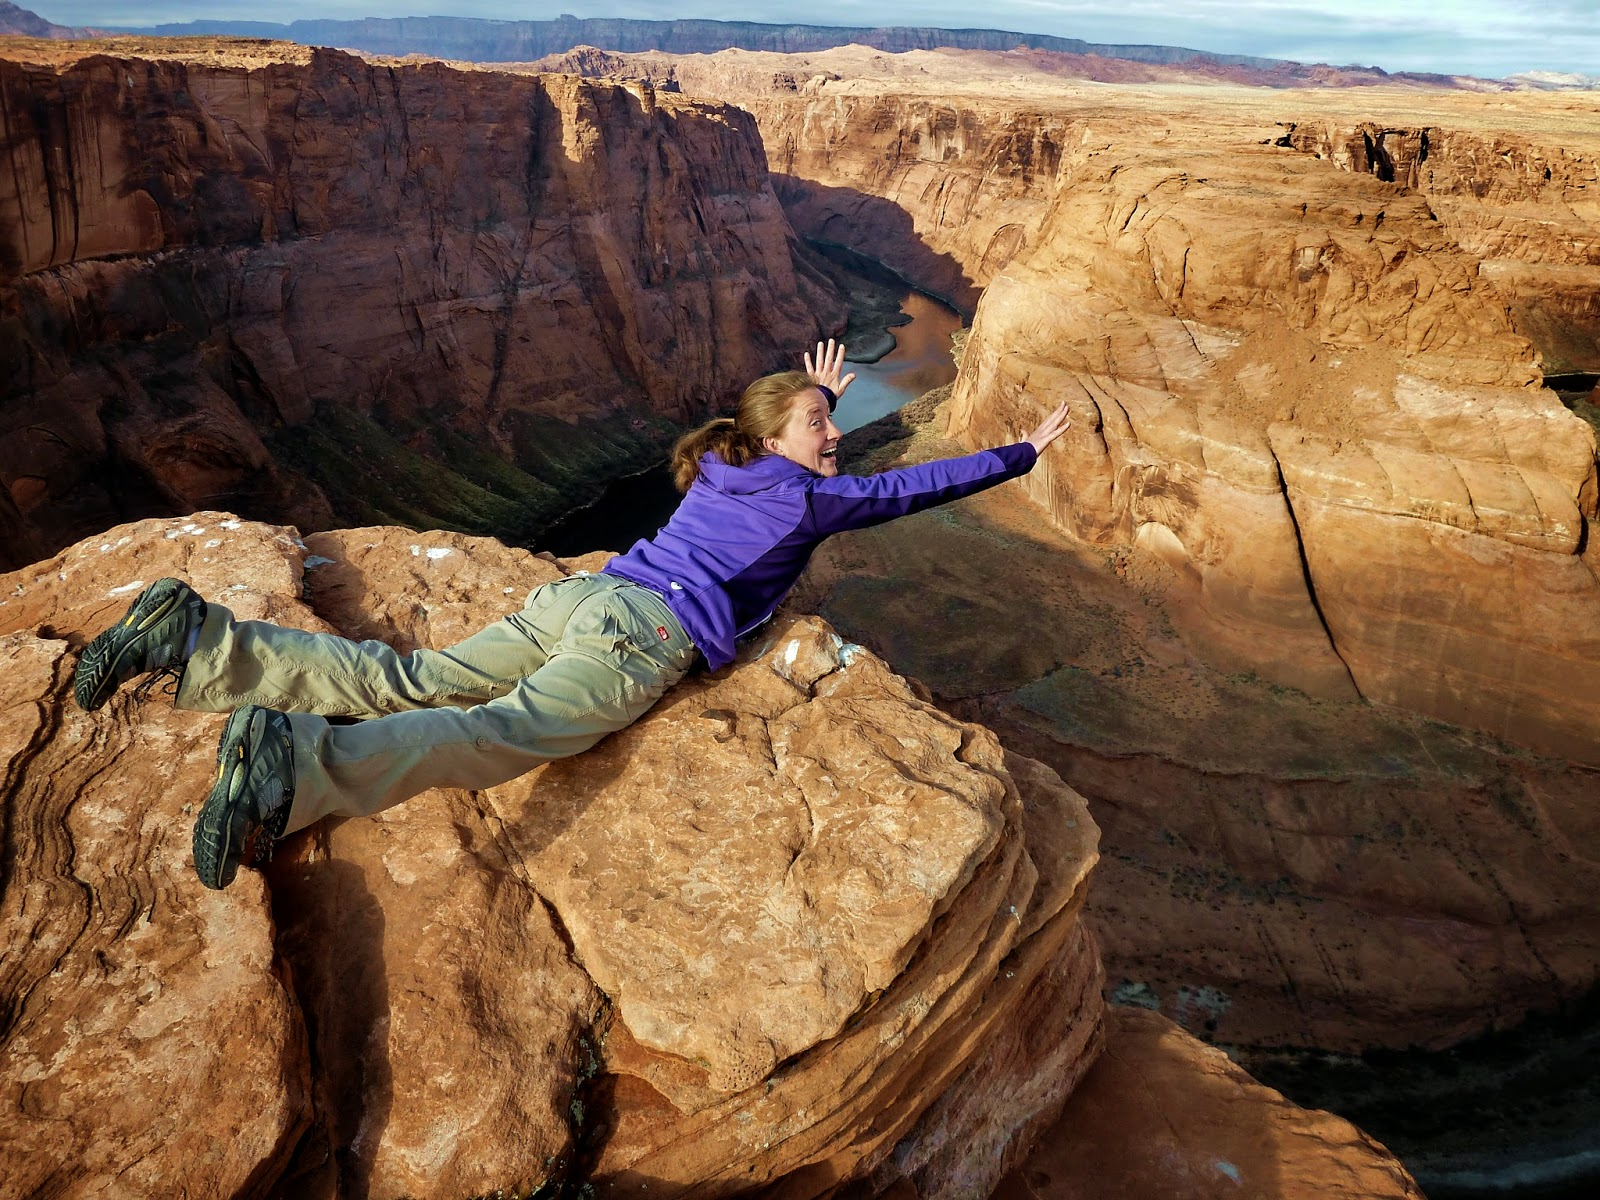 Hanging over the edge of the cliff at Horseshoe Bend in the Grand Canyon